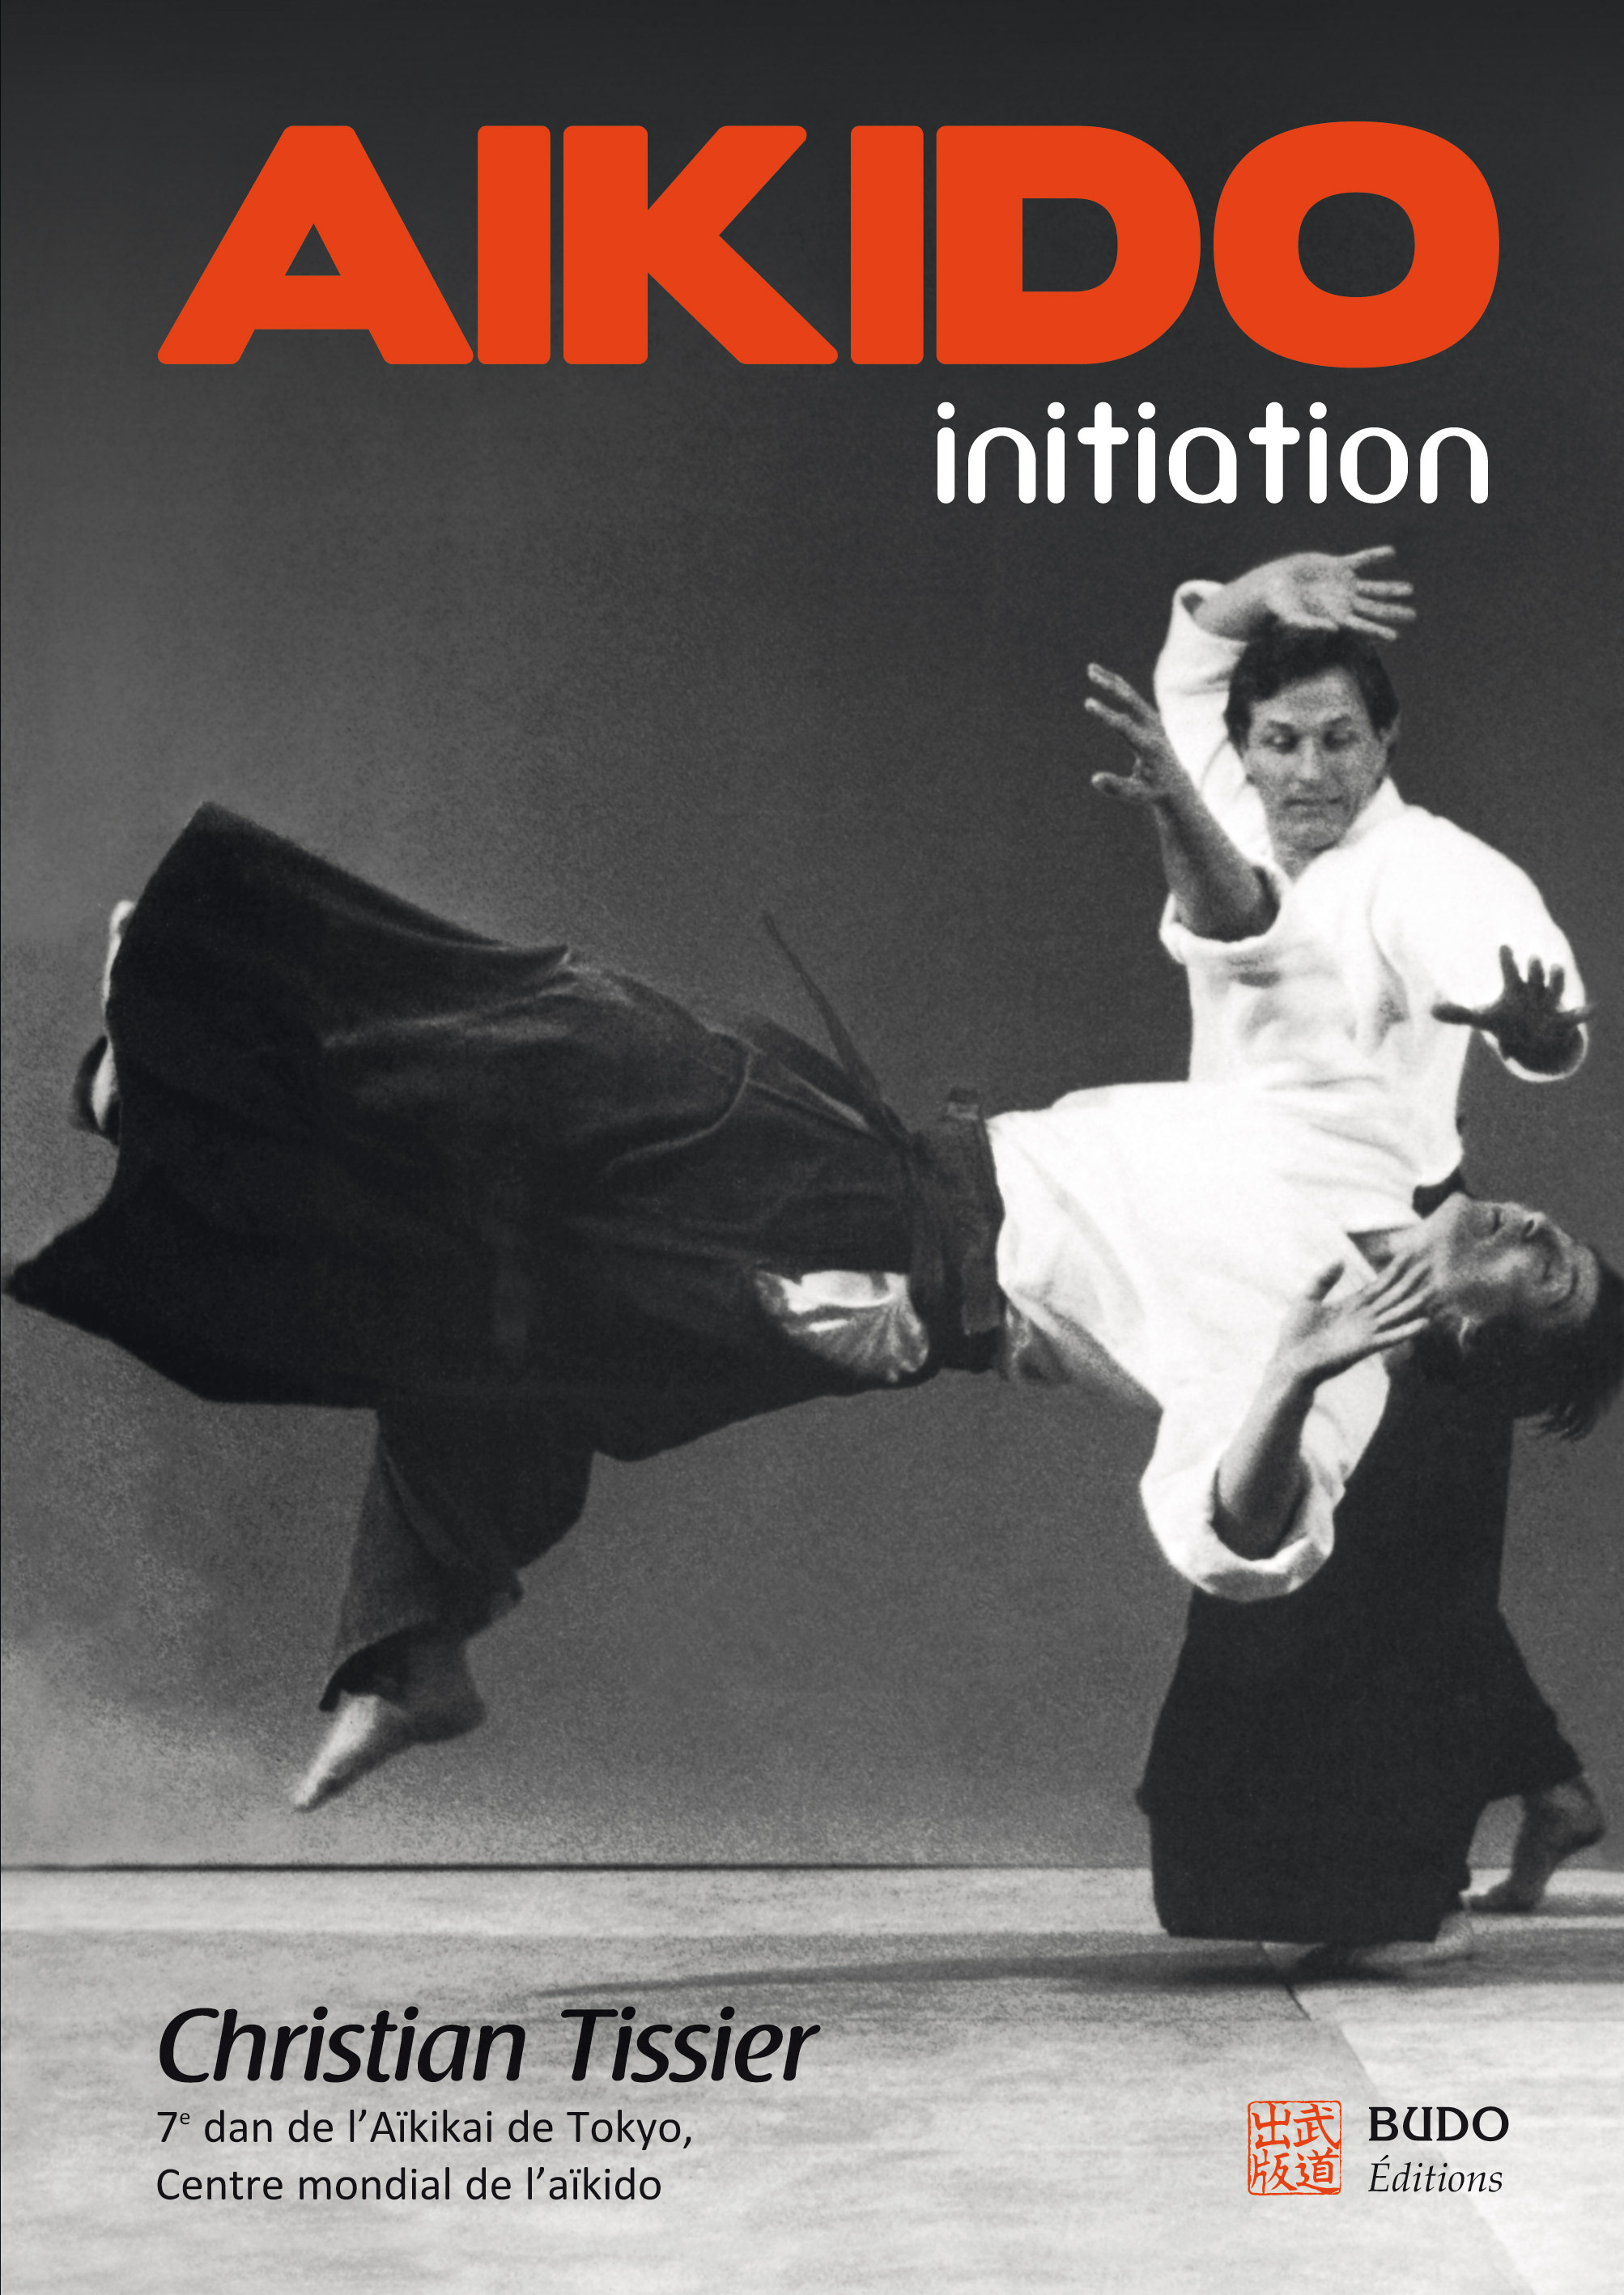 AIKIDO INITIATION